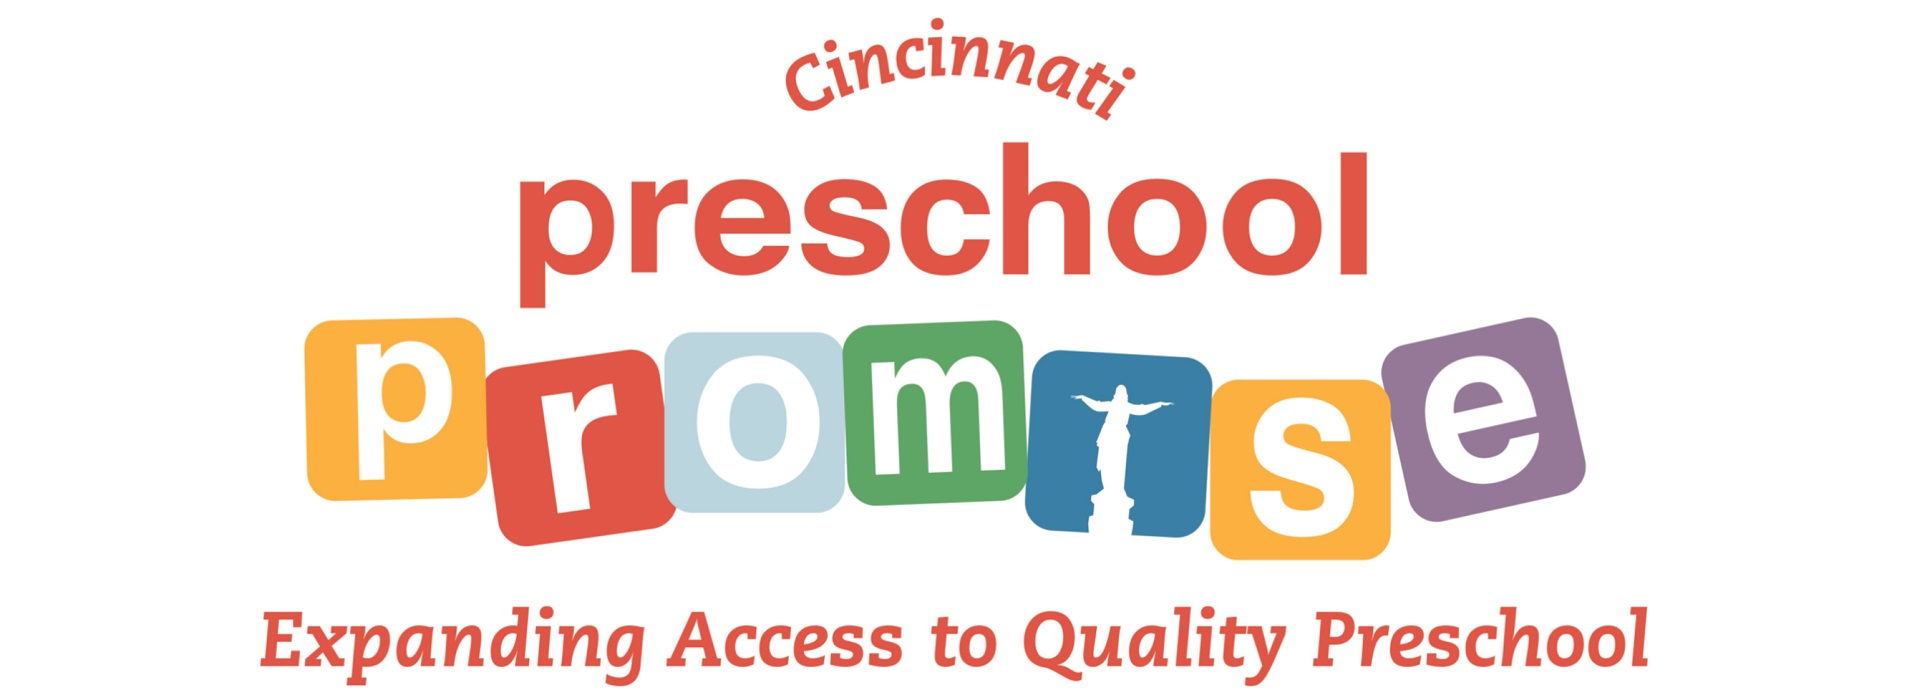 Expanding Access to Quality Preschool